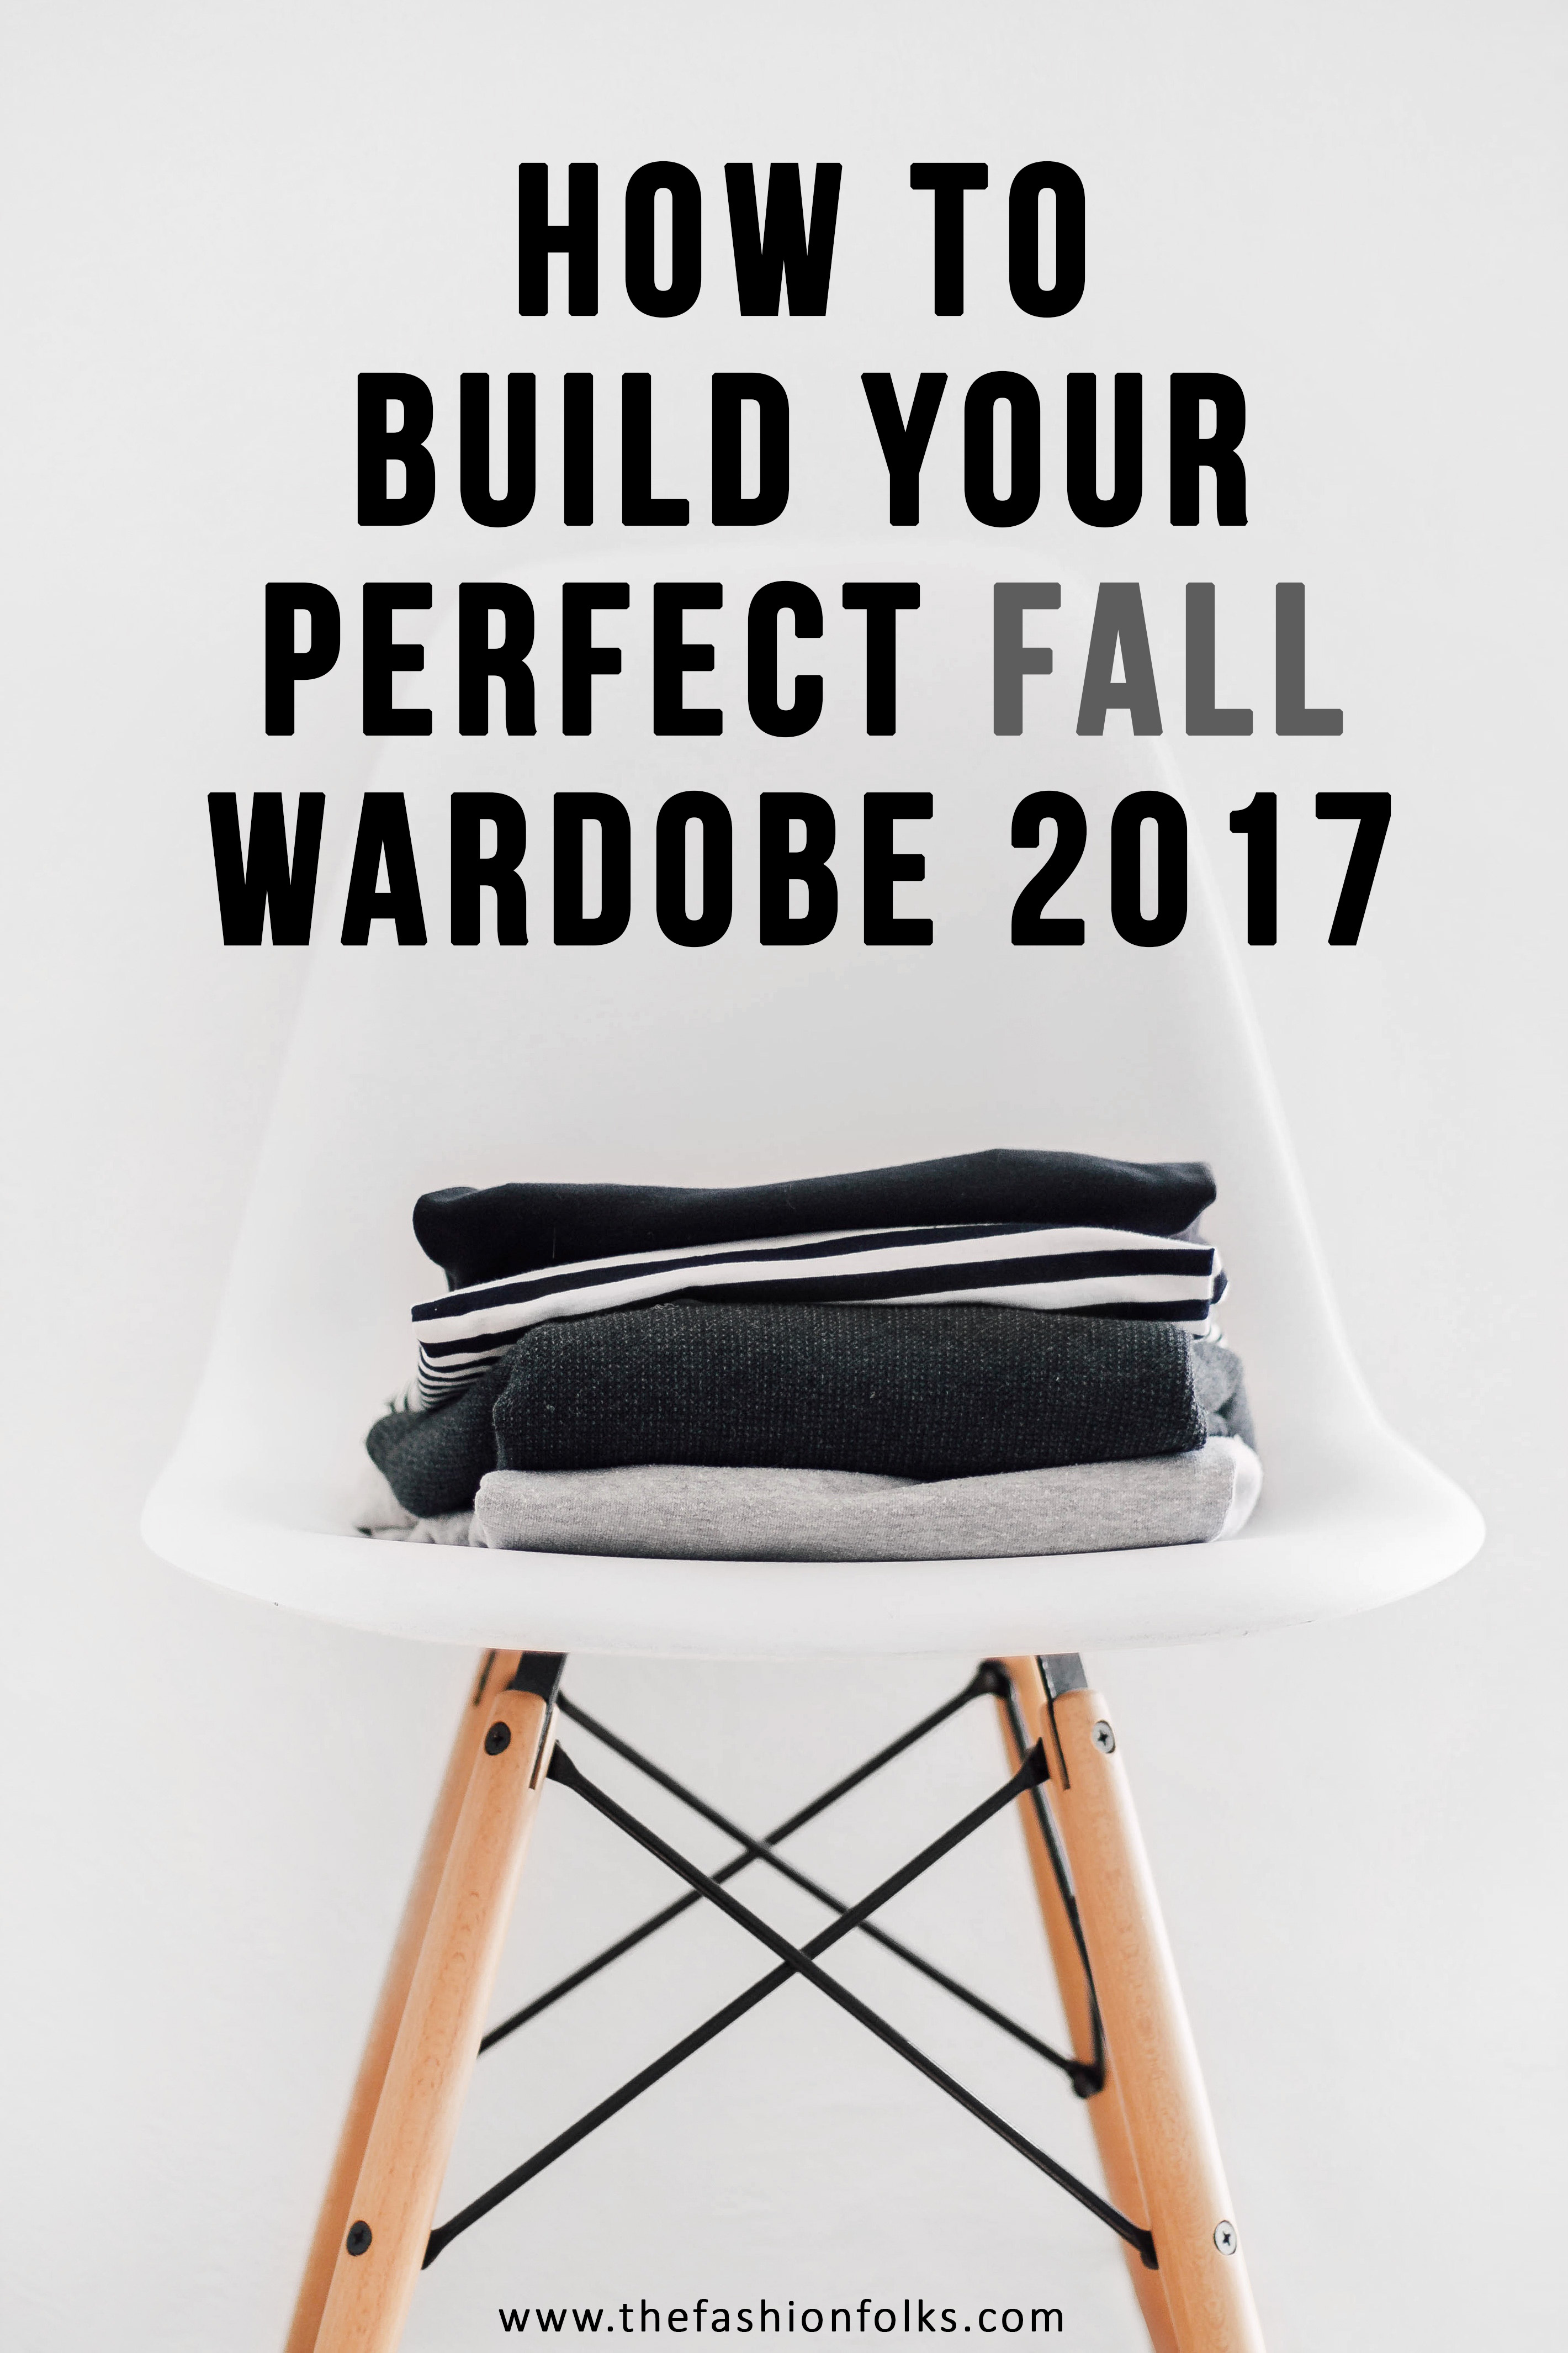 How To Build Your Perfect Fall Wardrobe 2017